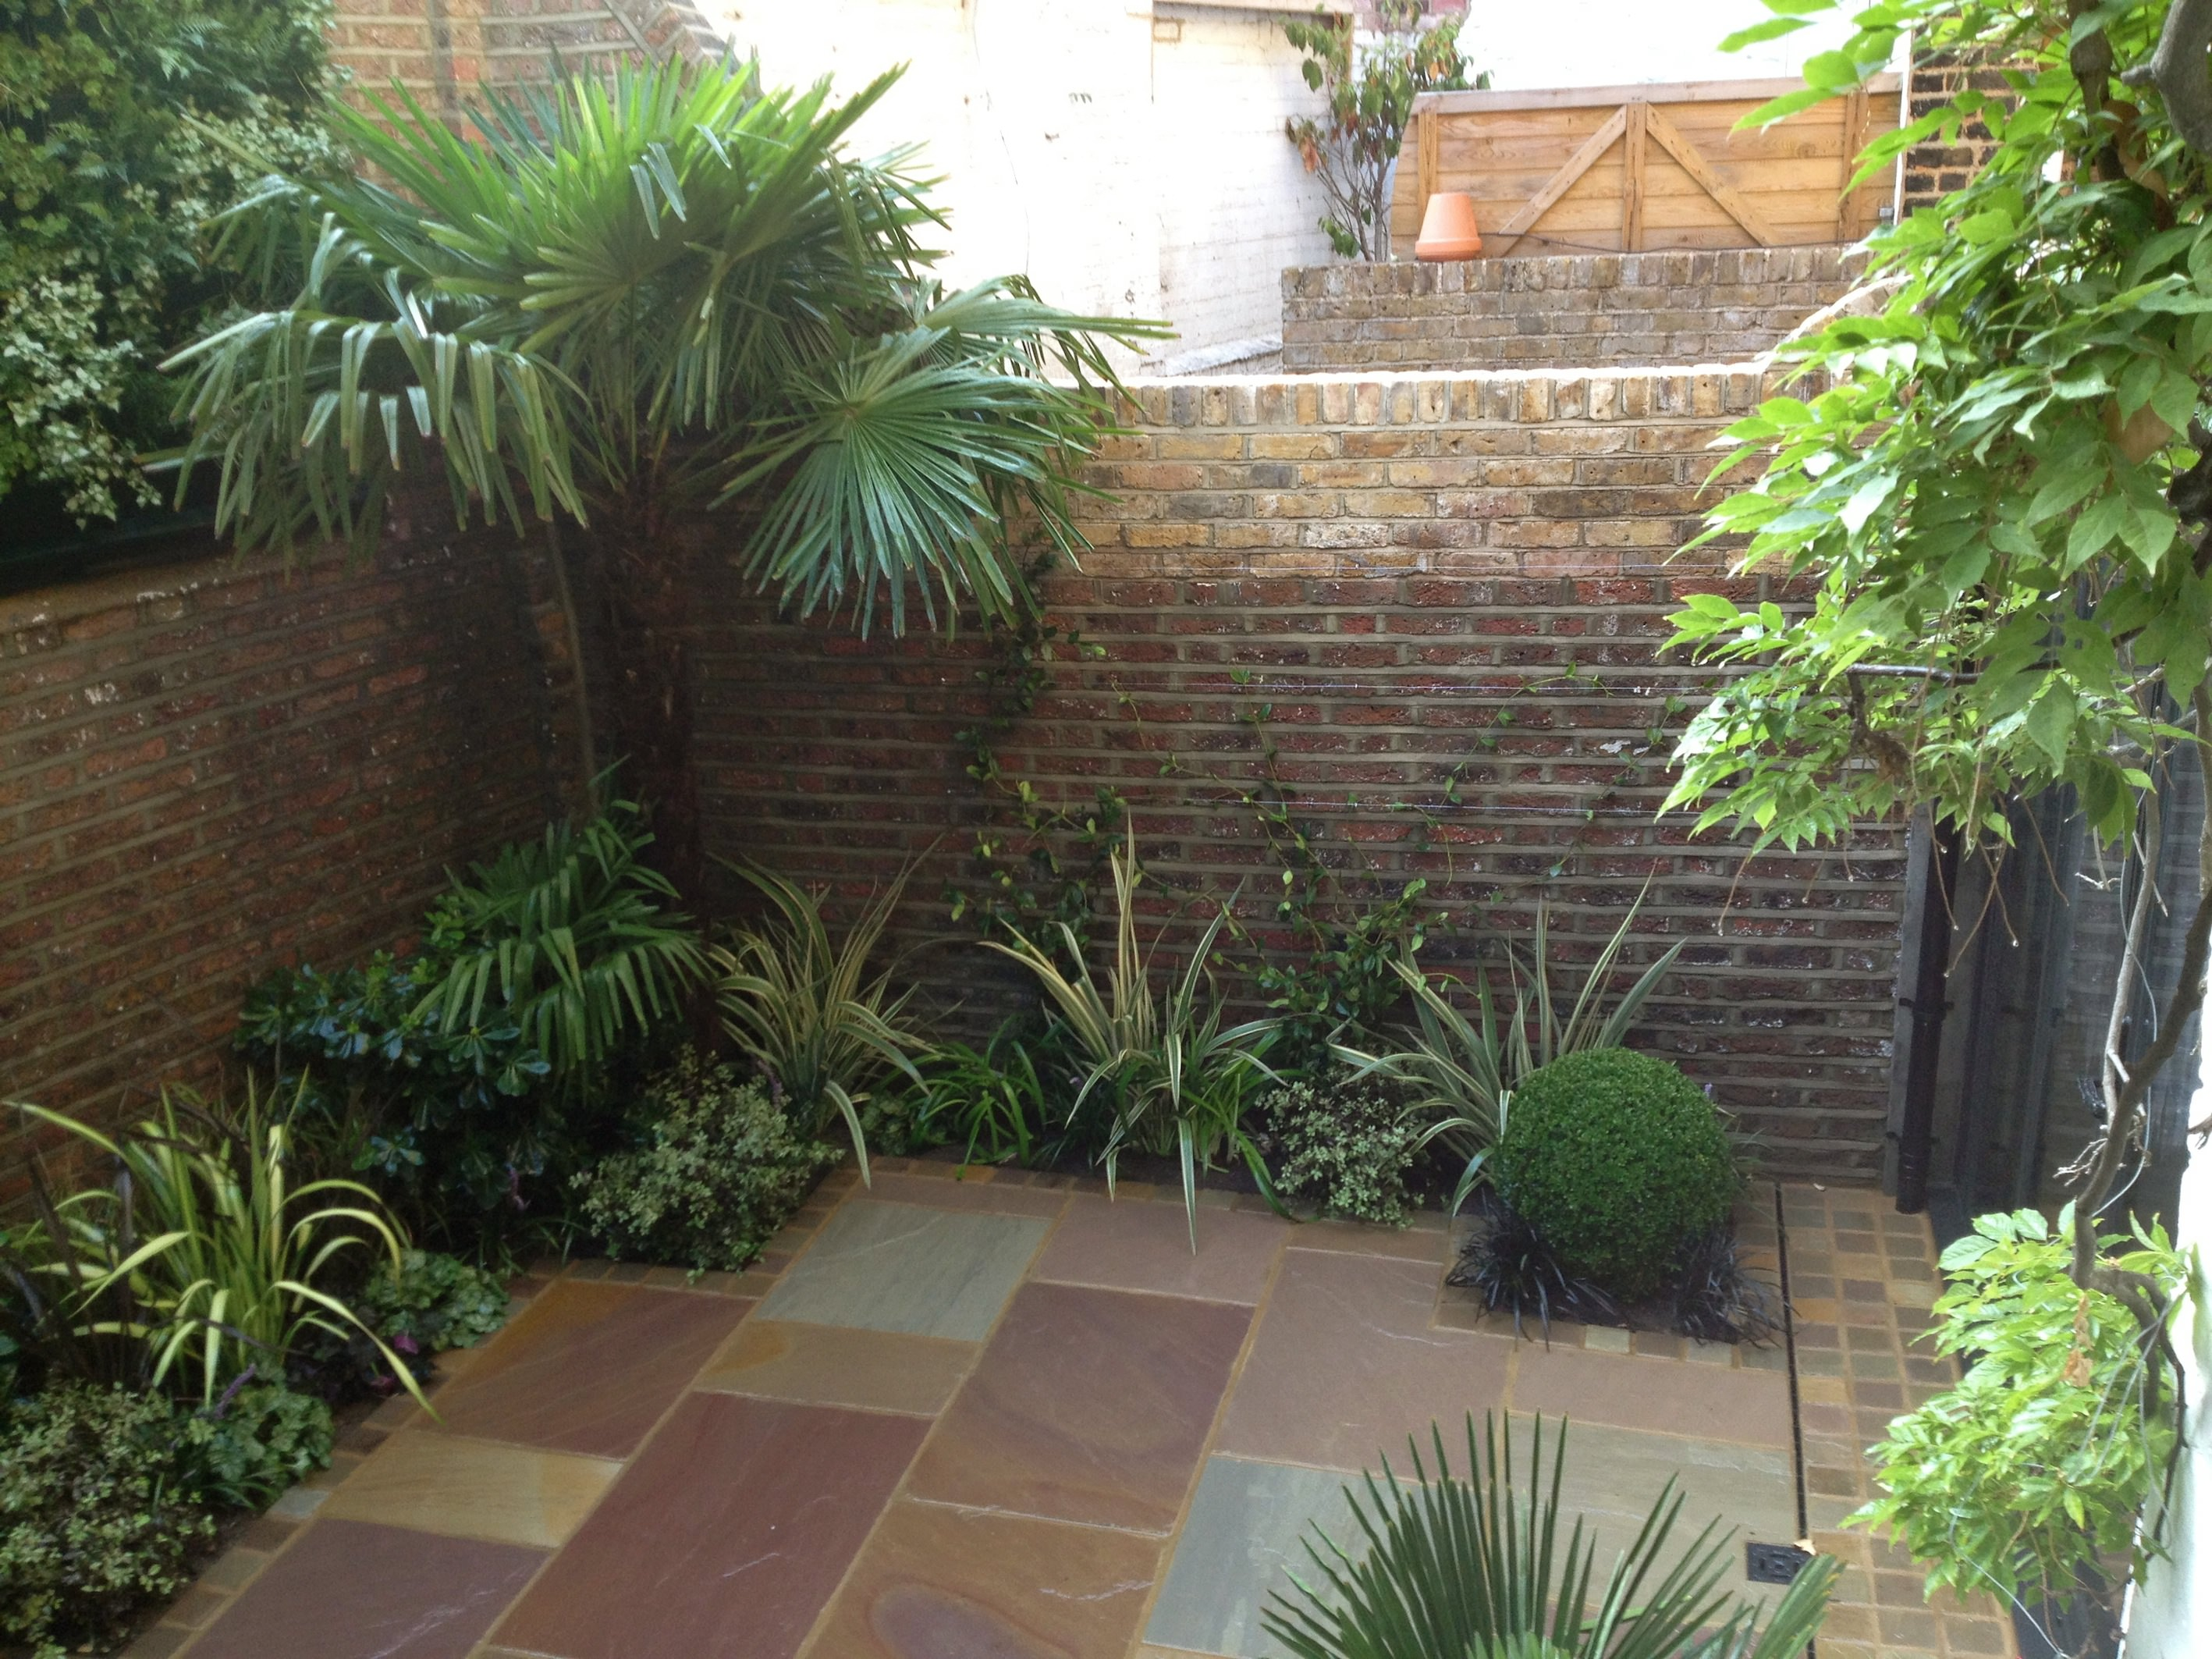 Low maintenance garden designs garden club london - Garden ideas london ...